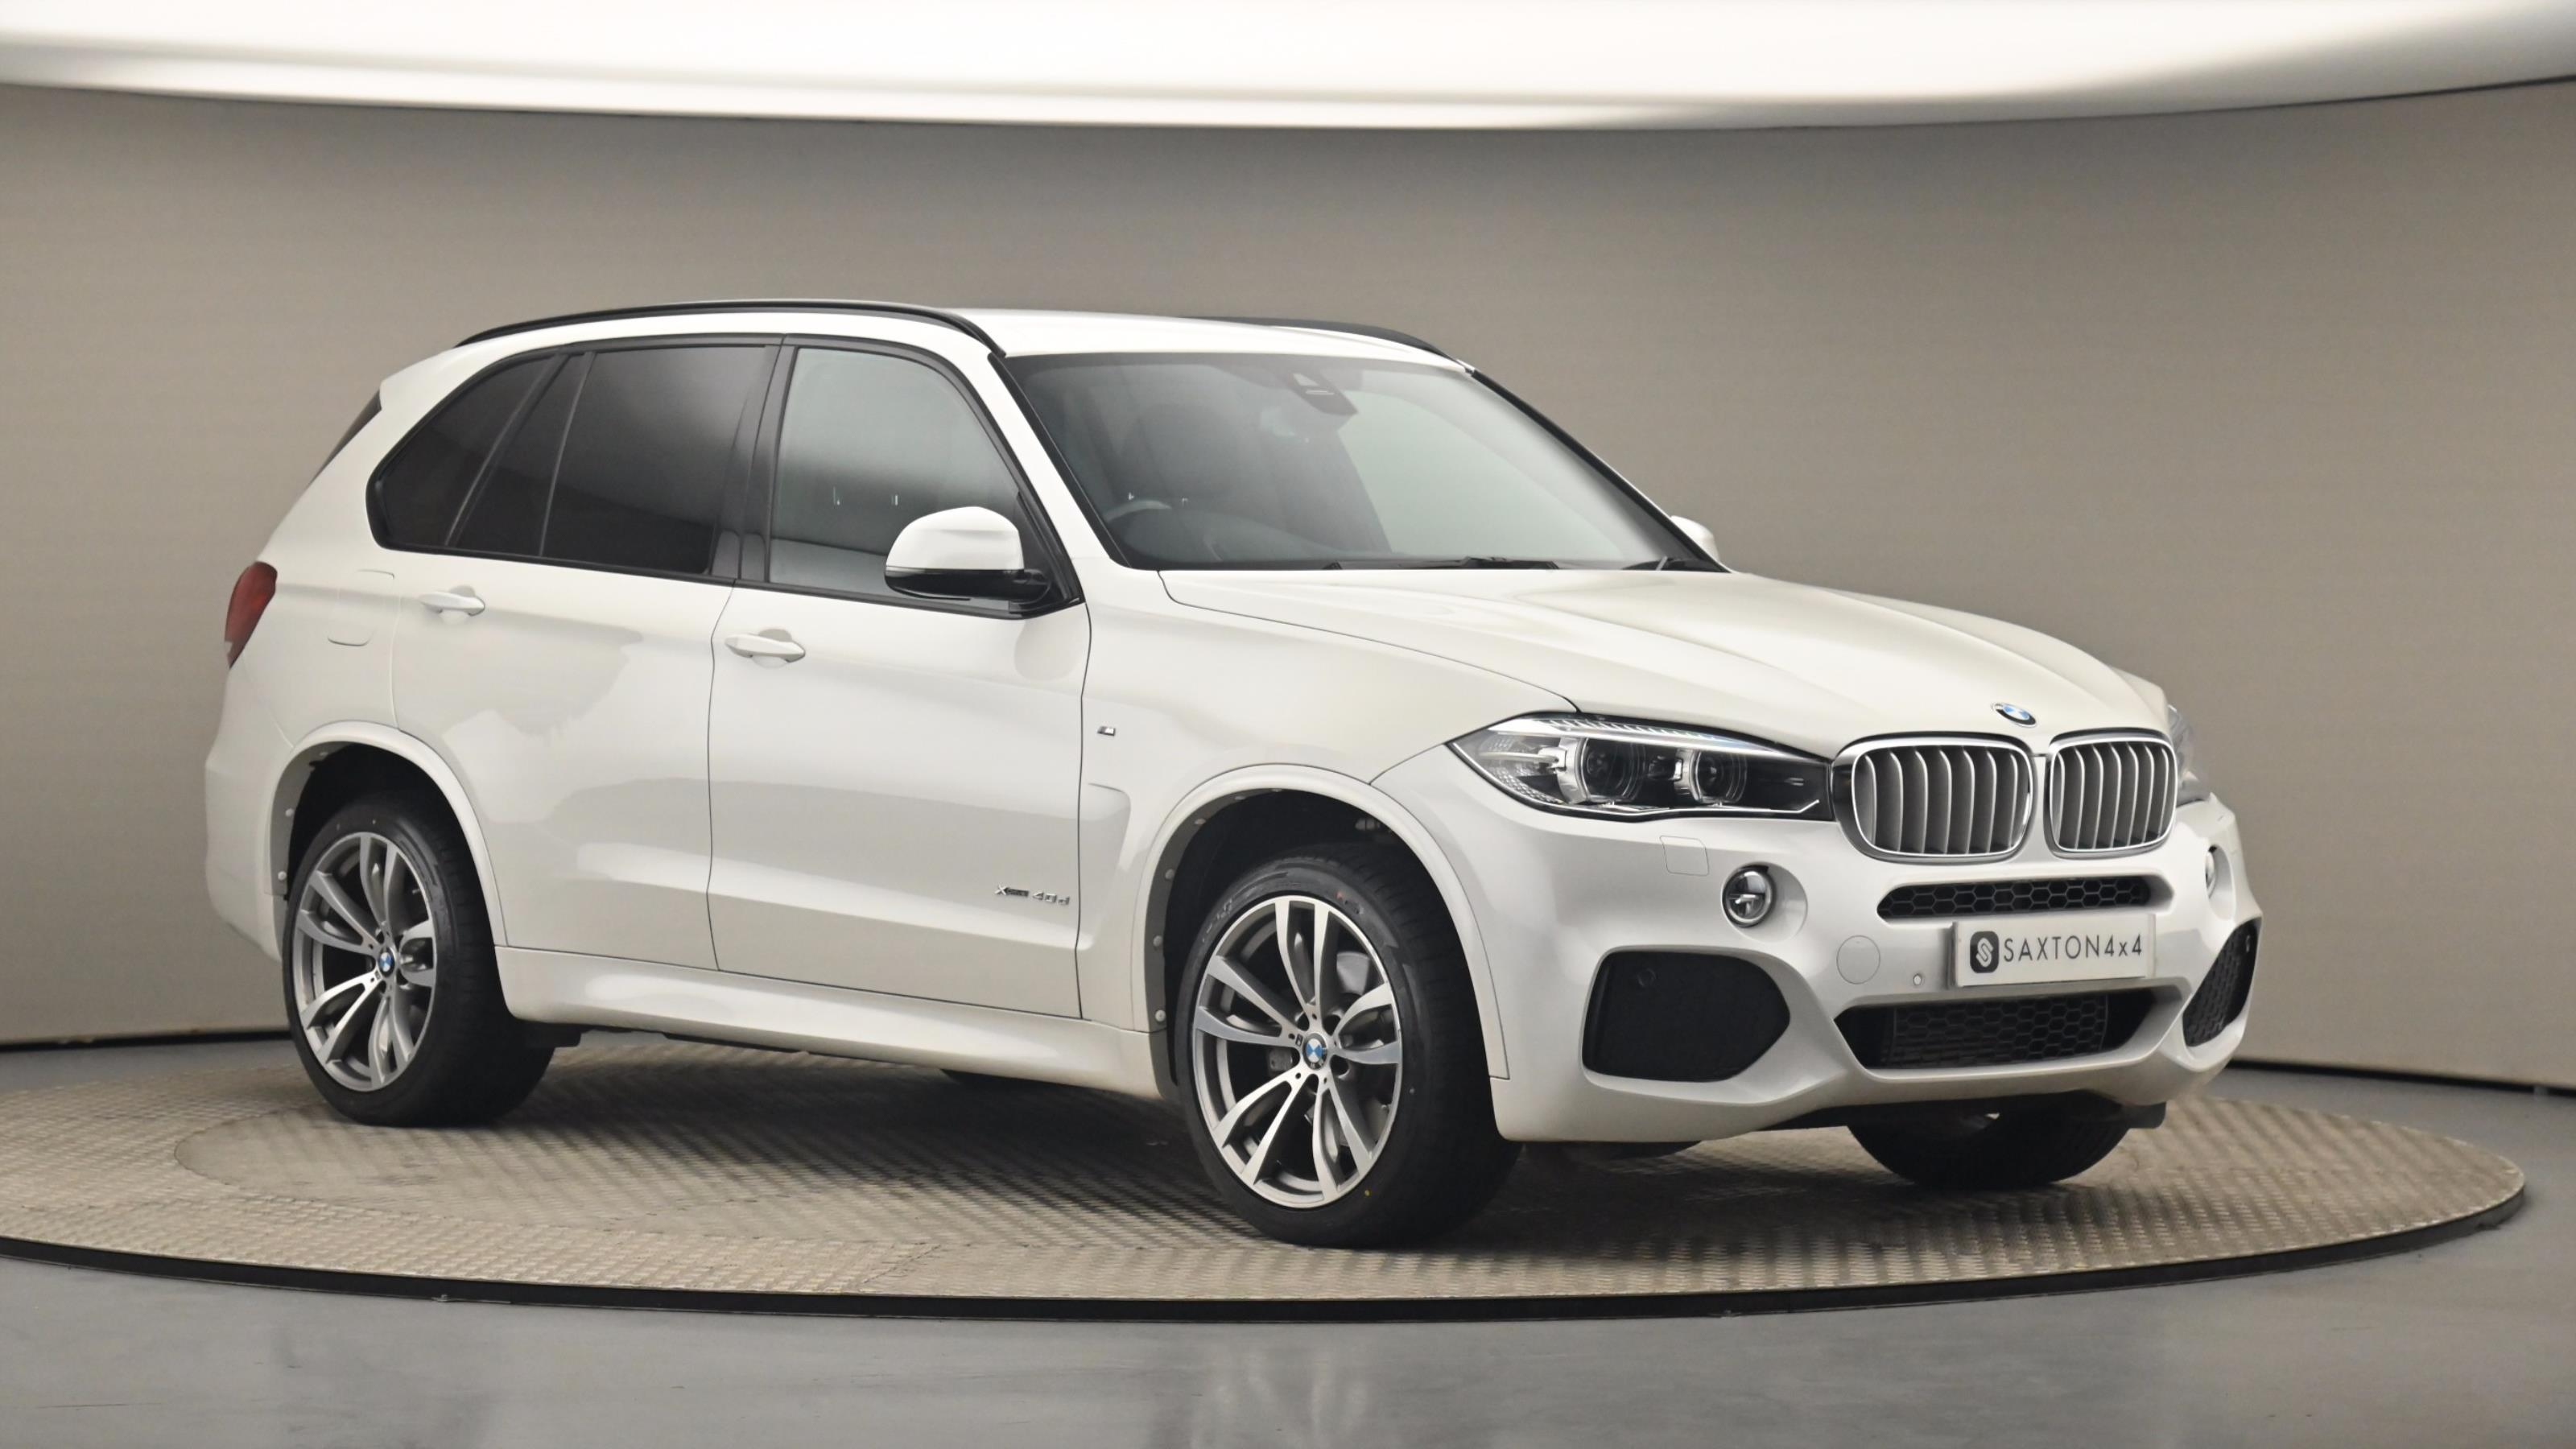 Used 2017 BMW X5 xDrive40d M Sport 5dr Auto [7 Seat] WHITE at Saxton4x4